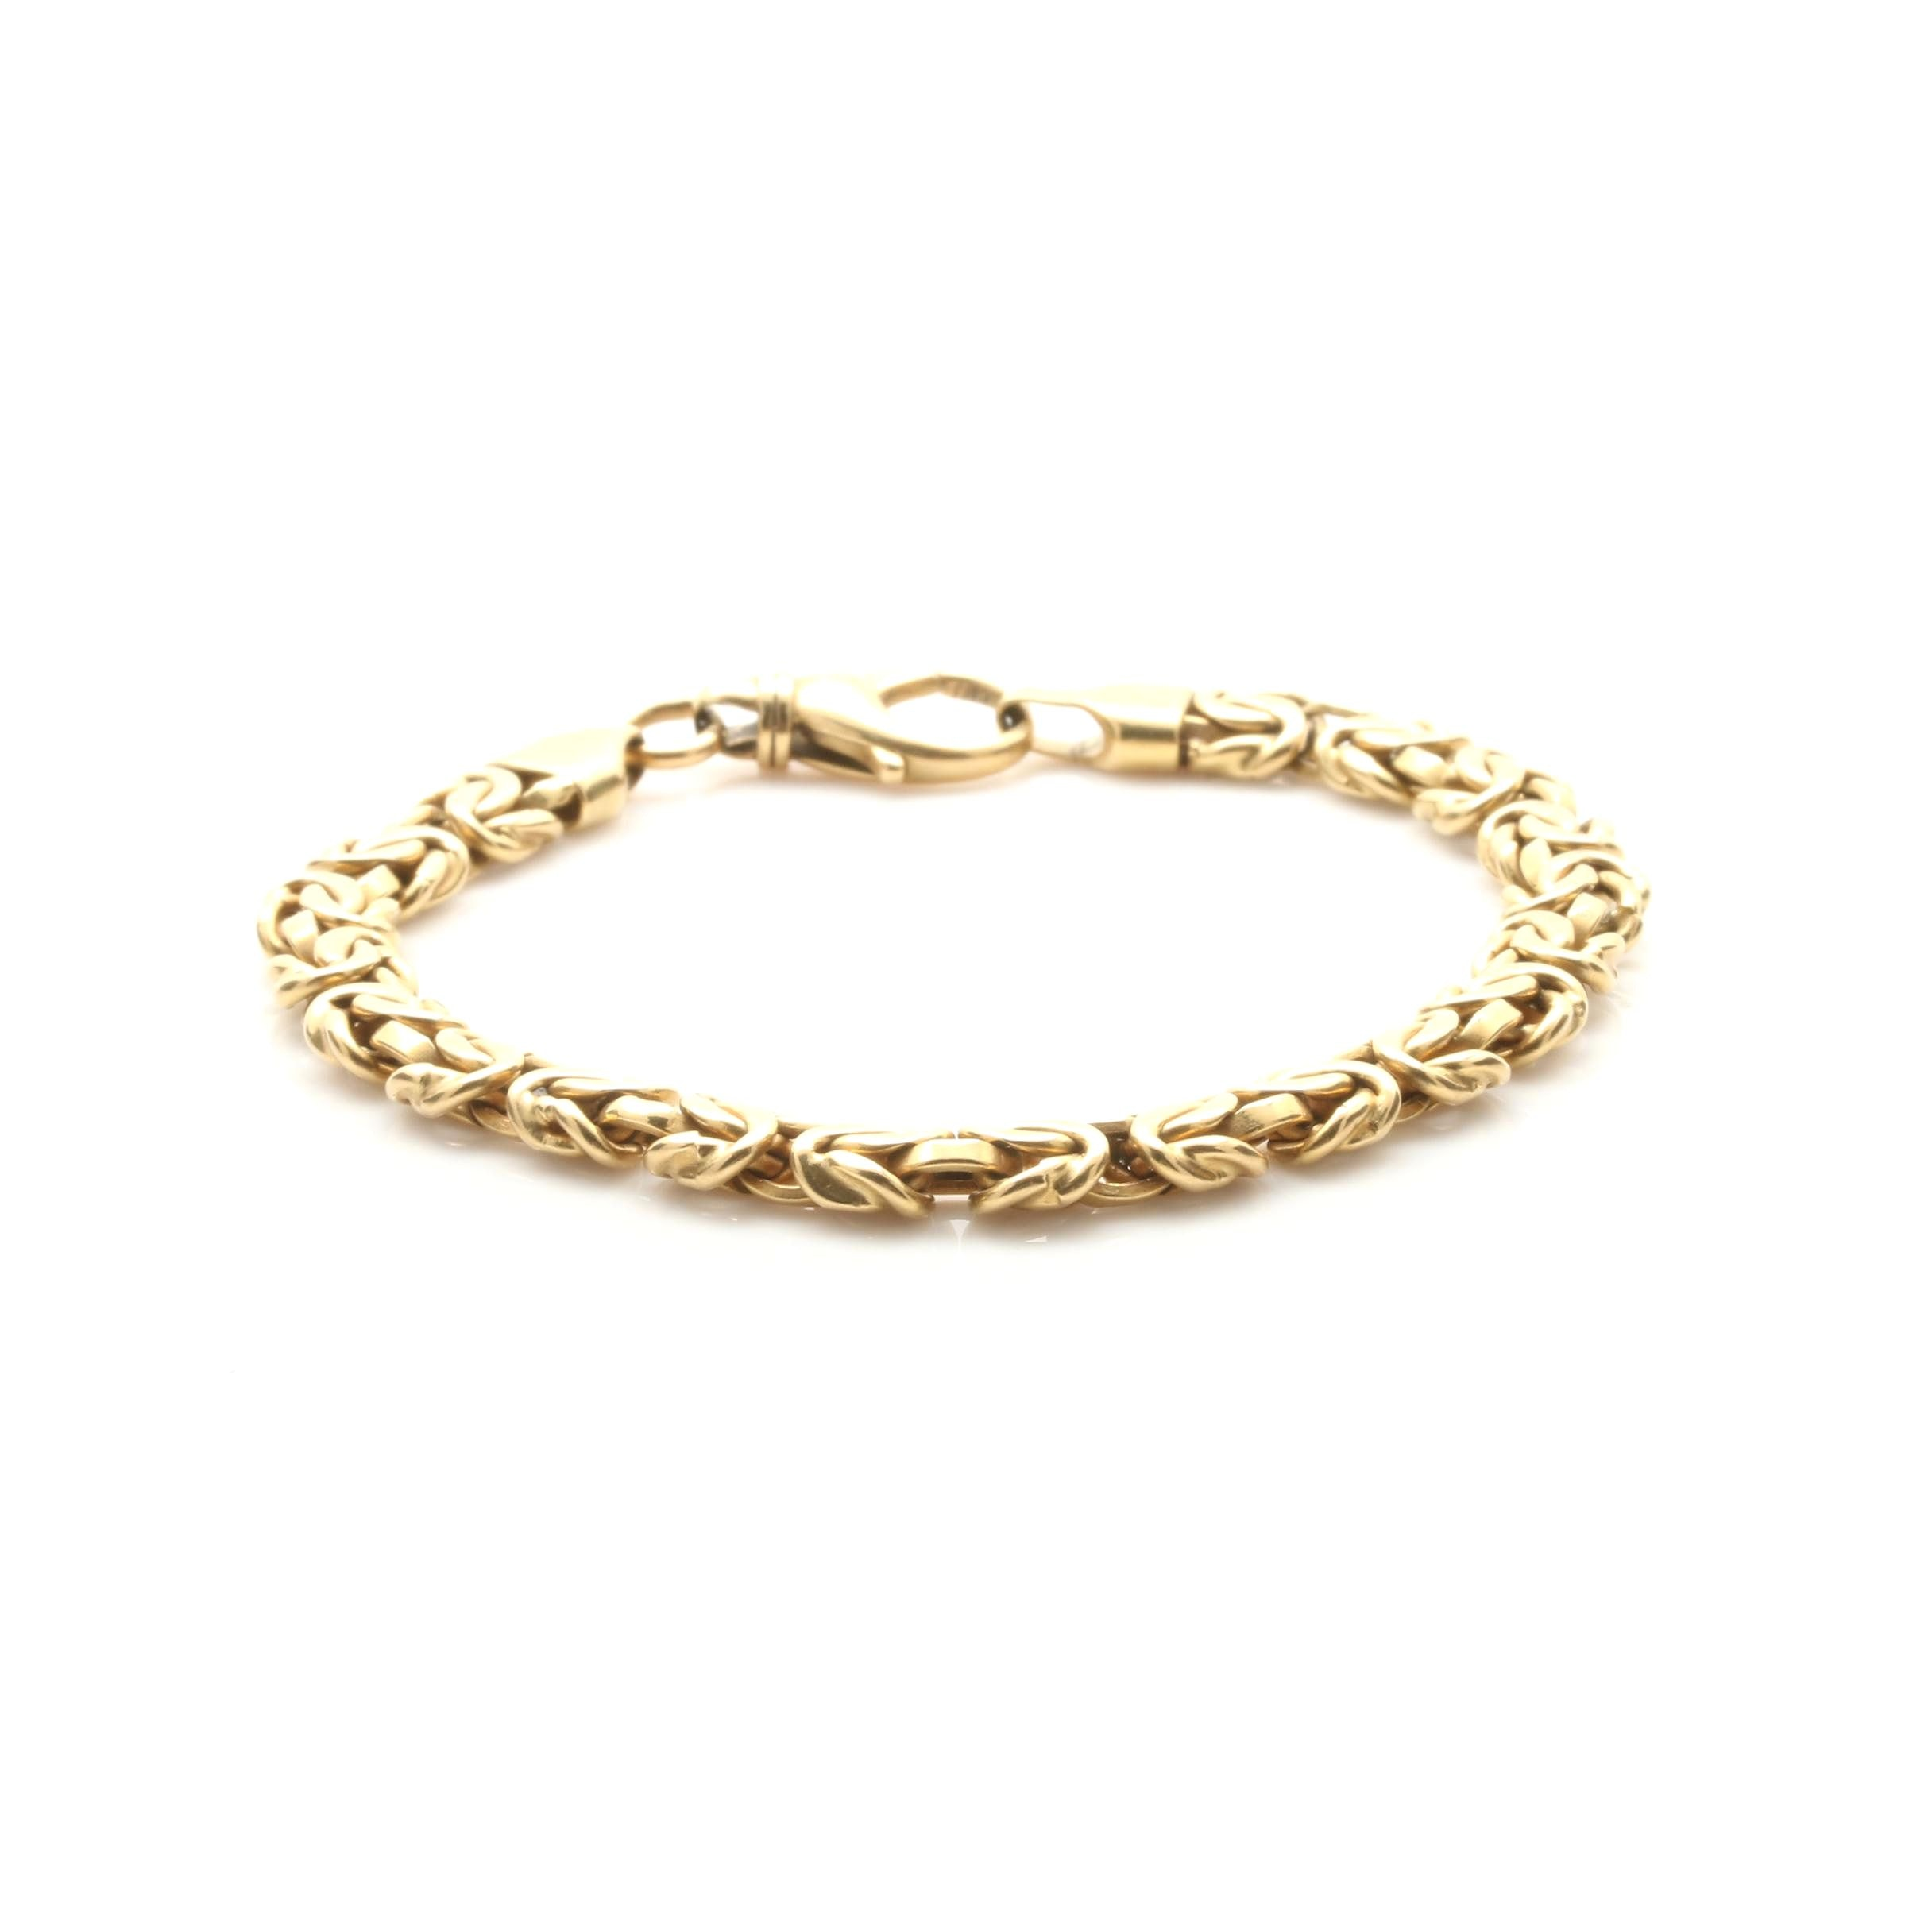 18K Yellow Gold Byzantine Chain Bracelet